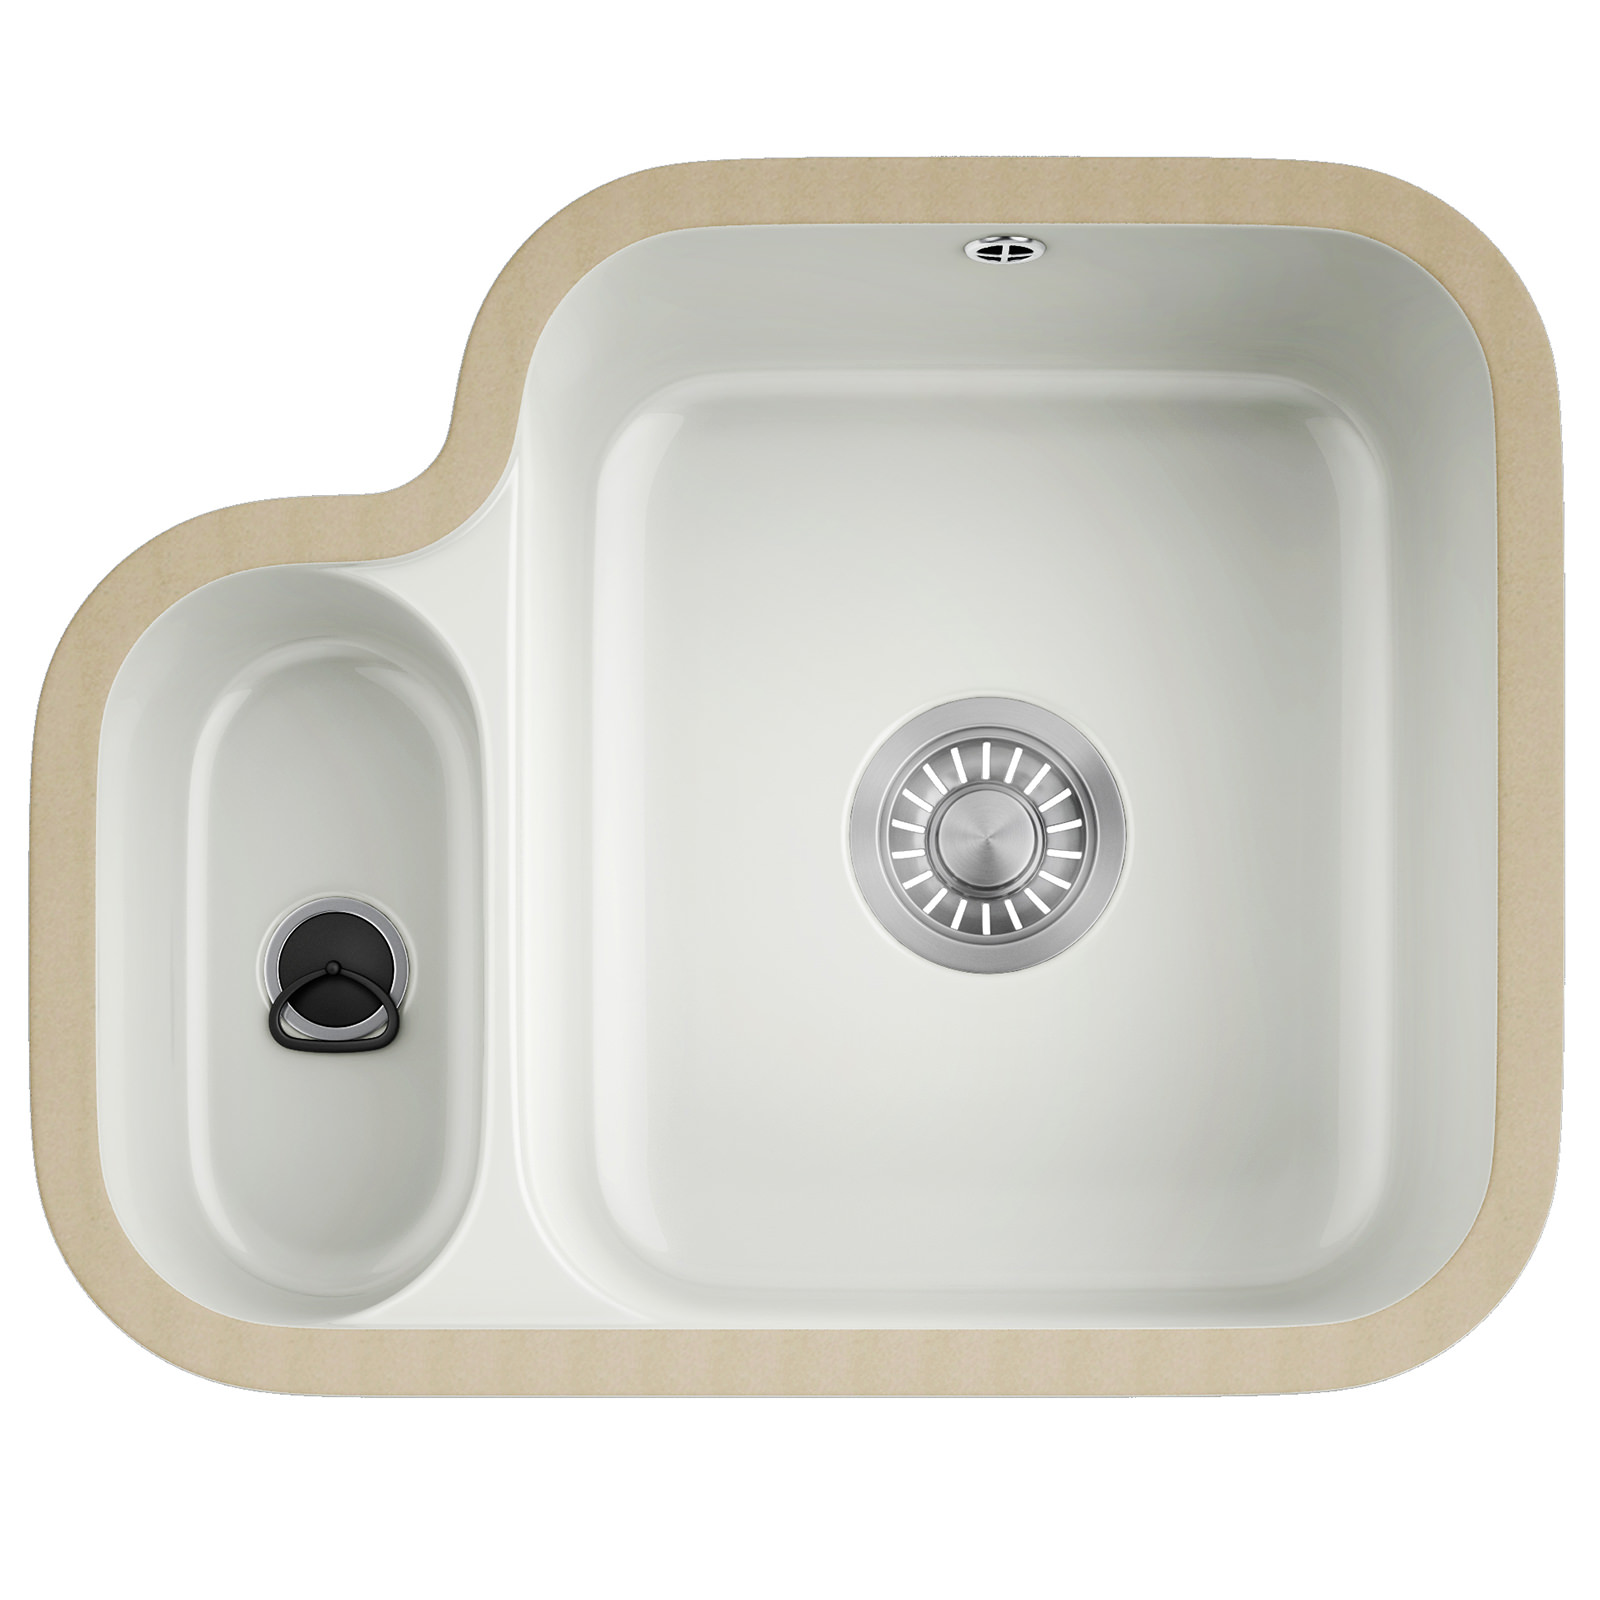 Franke V And B VBK 160 Ceramic White 1.5 Bowl Undermount Sink ...